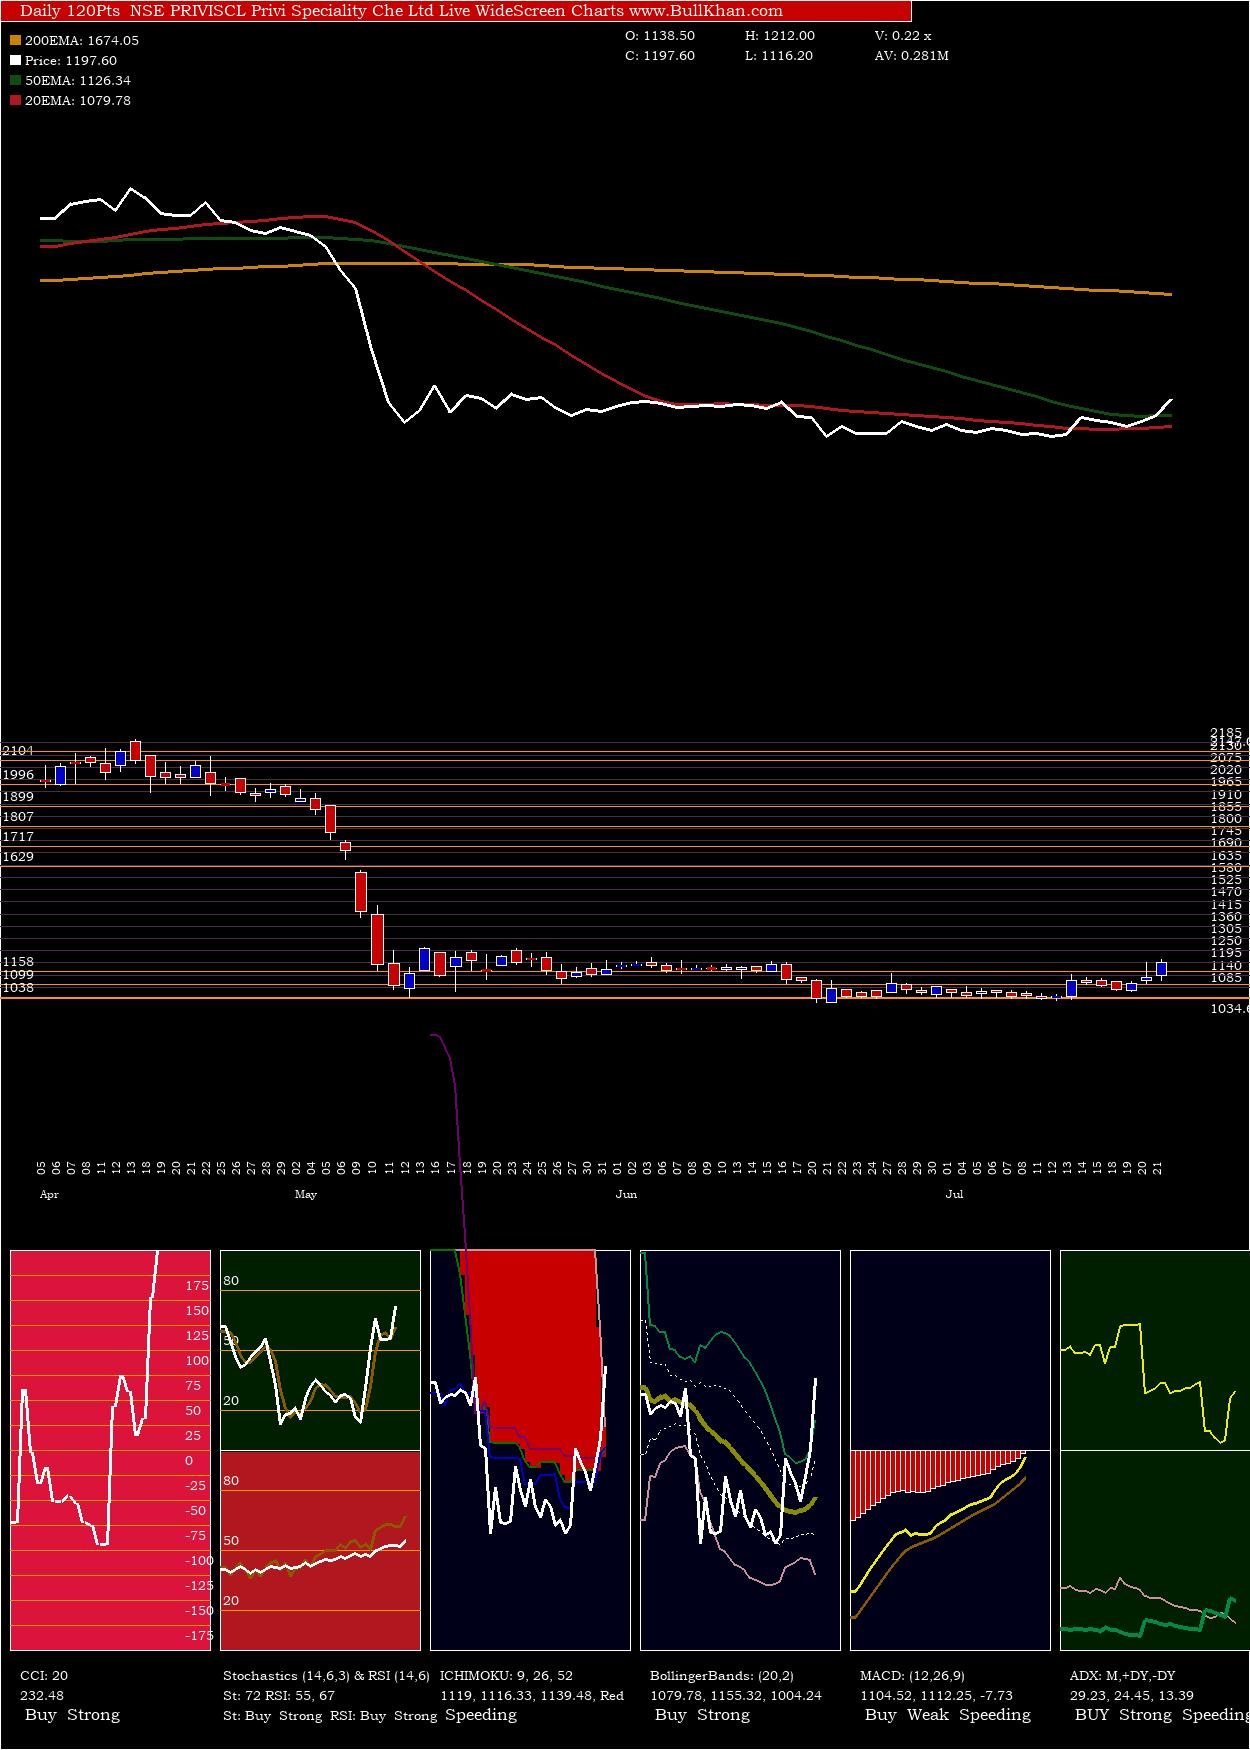 Privi Speciality charts and indicators